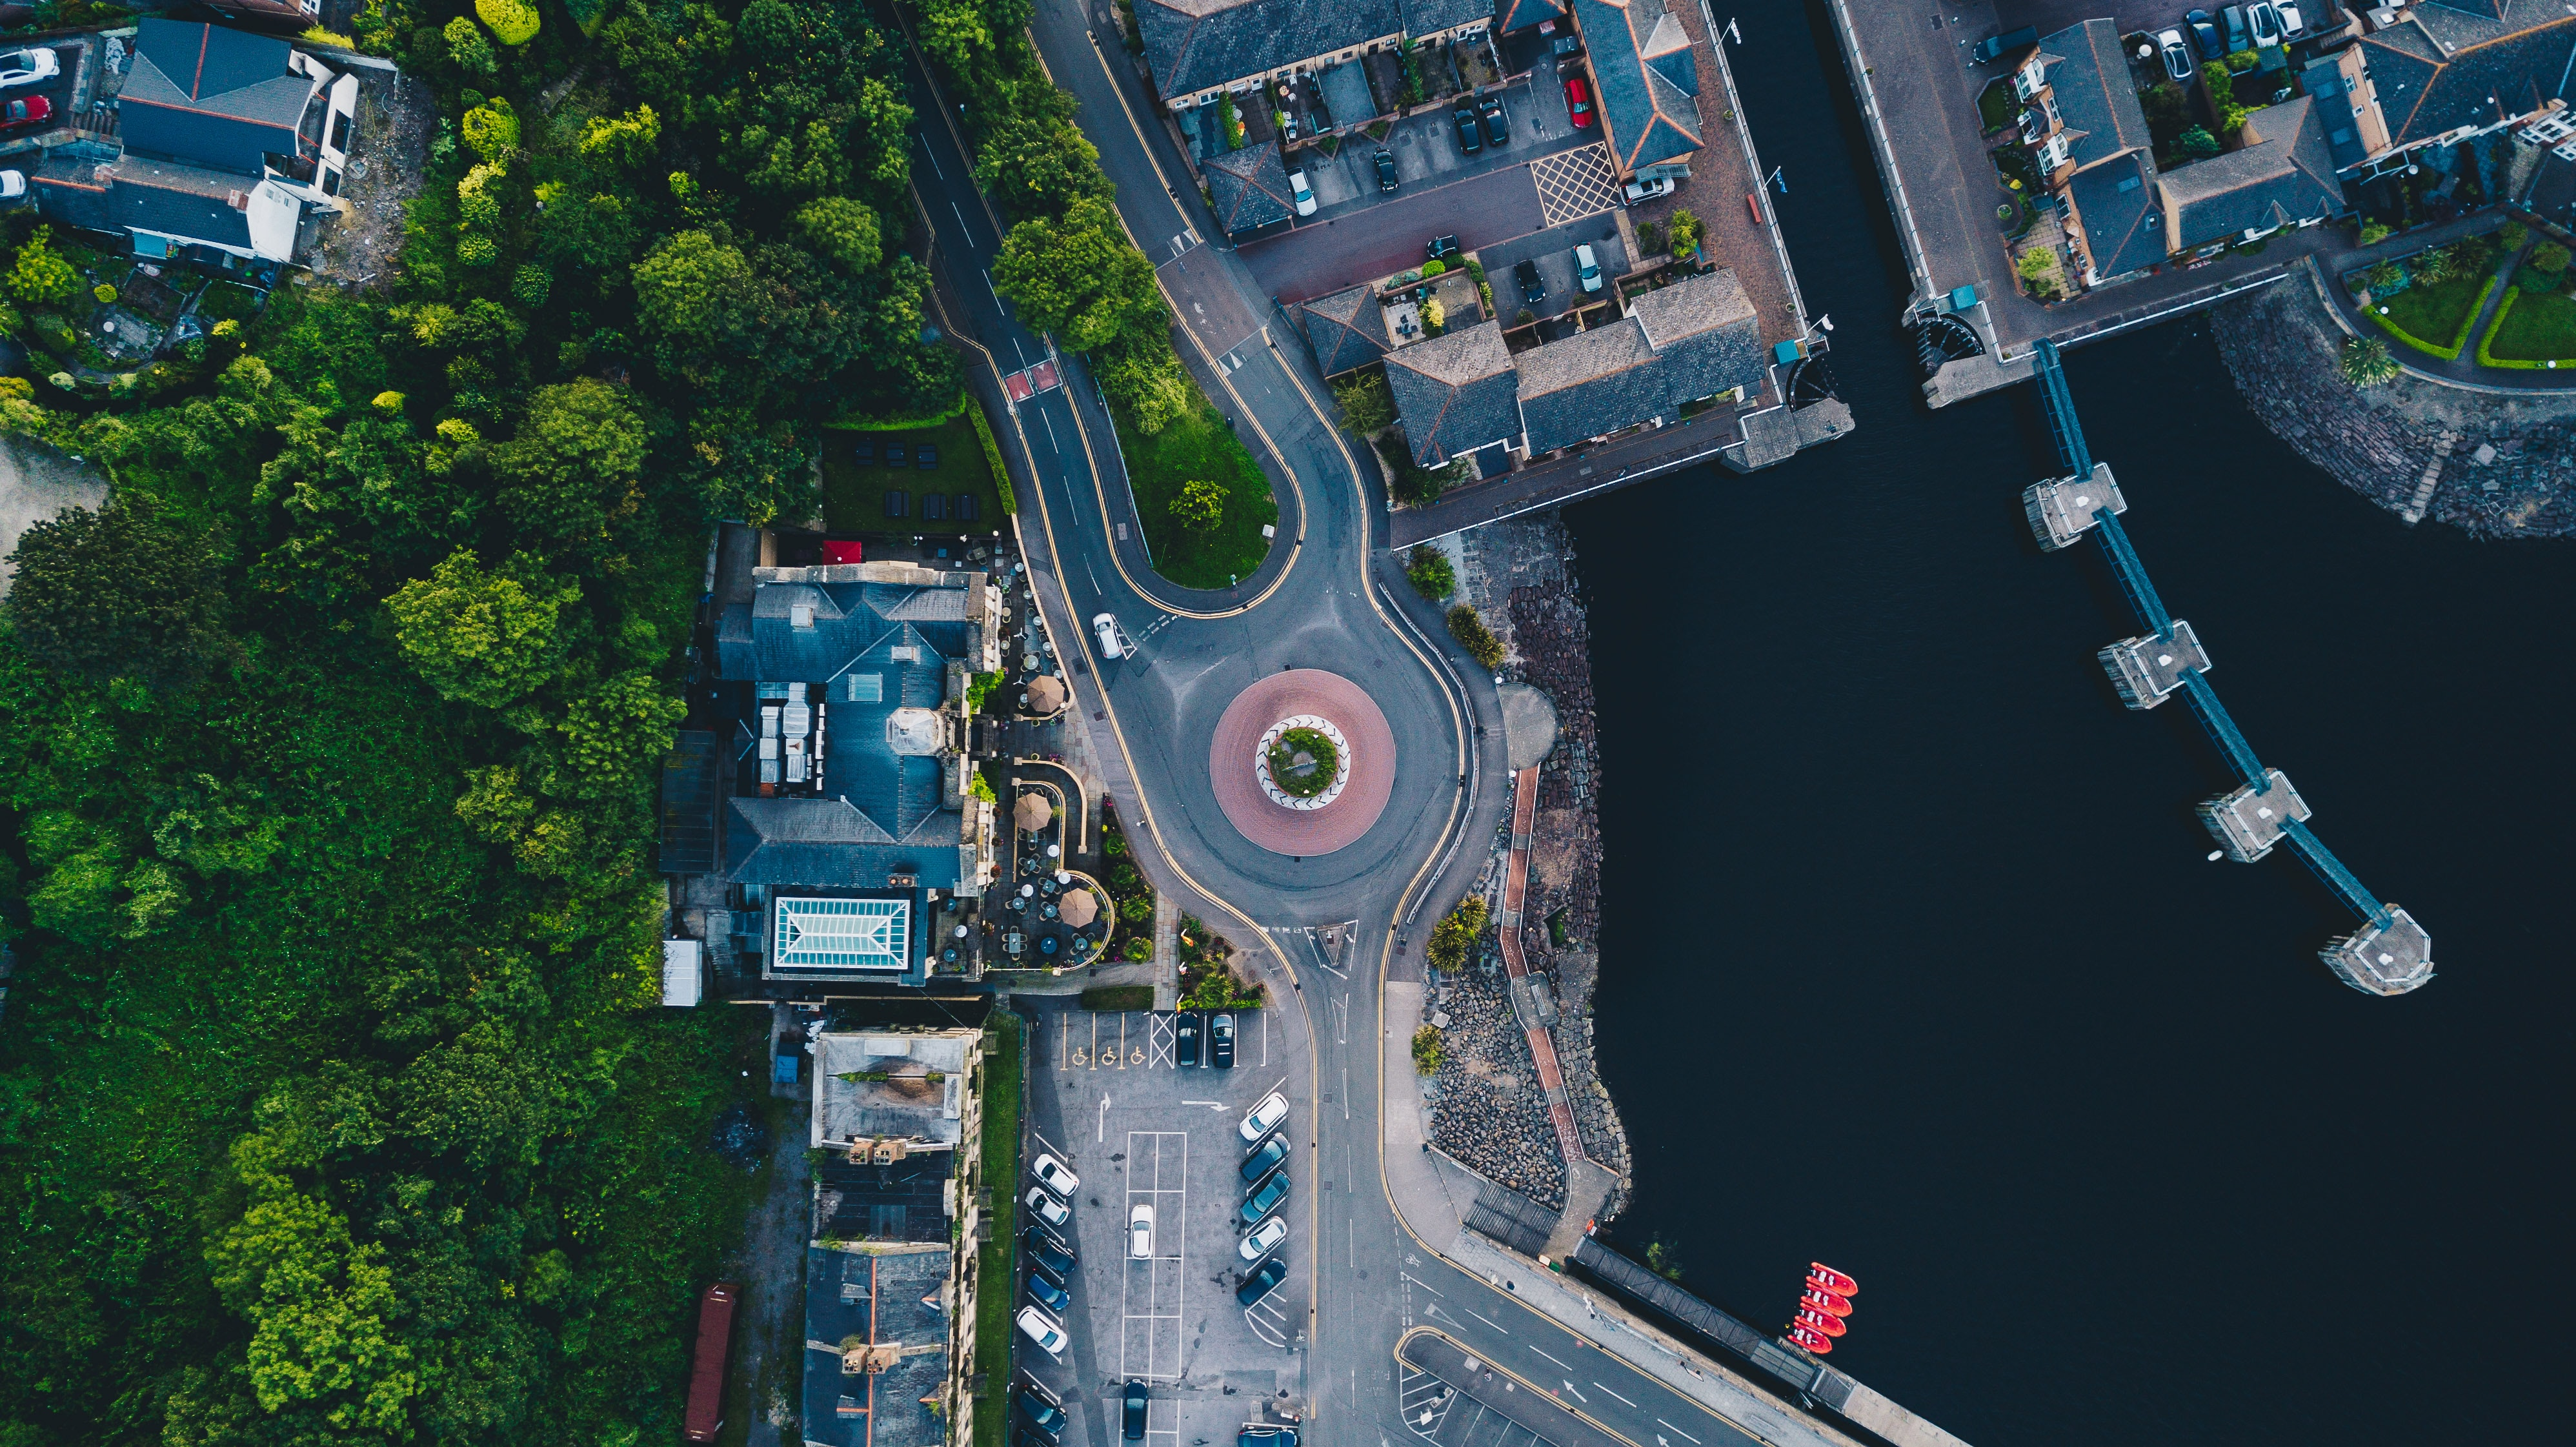 aerial photography of buildings near body of water